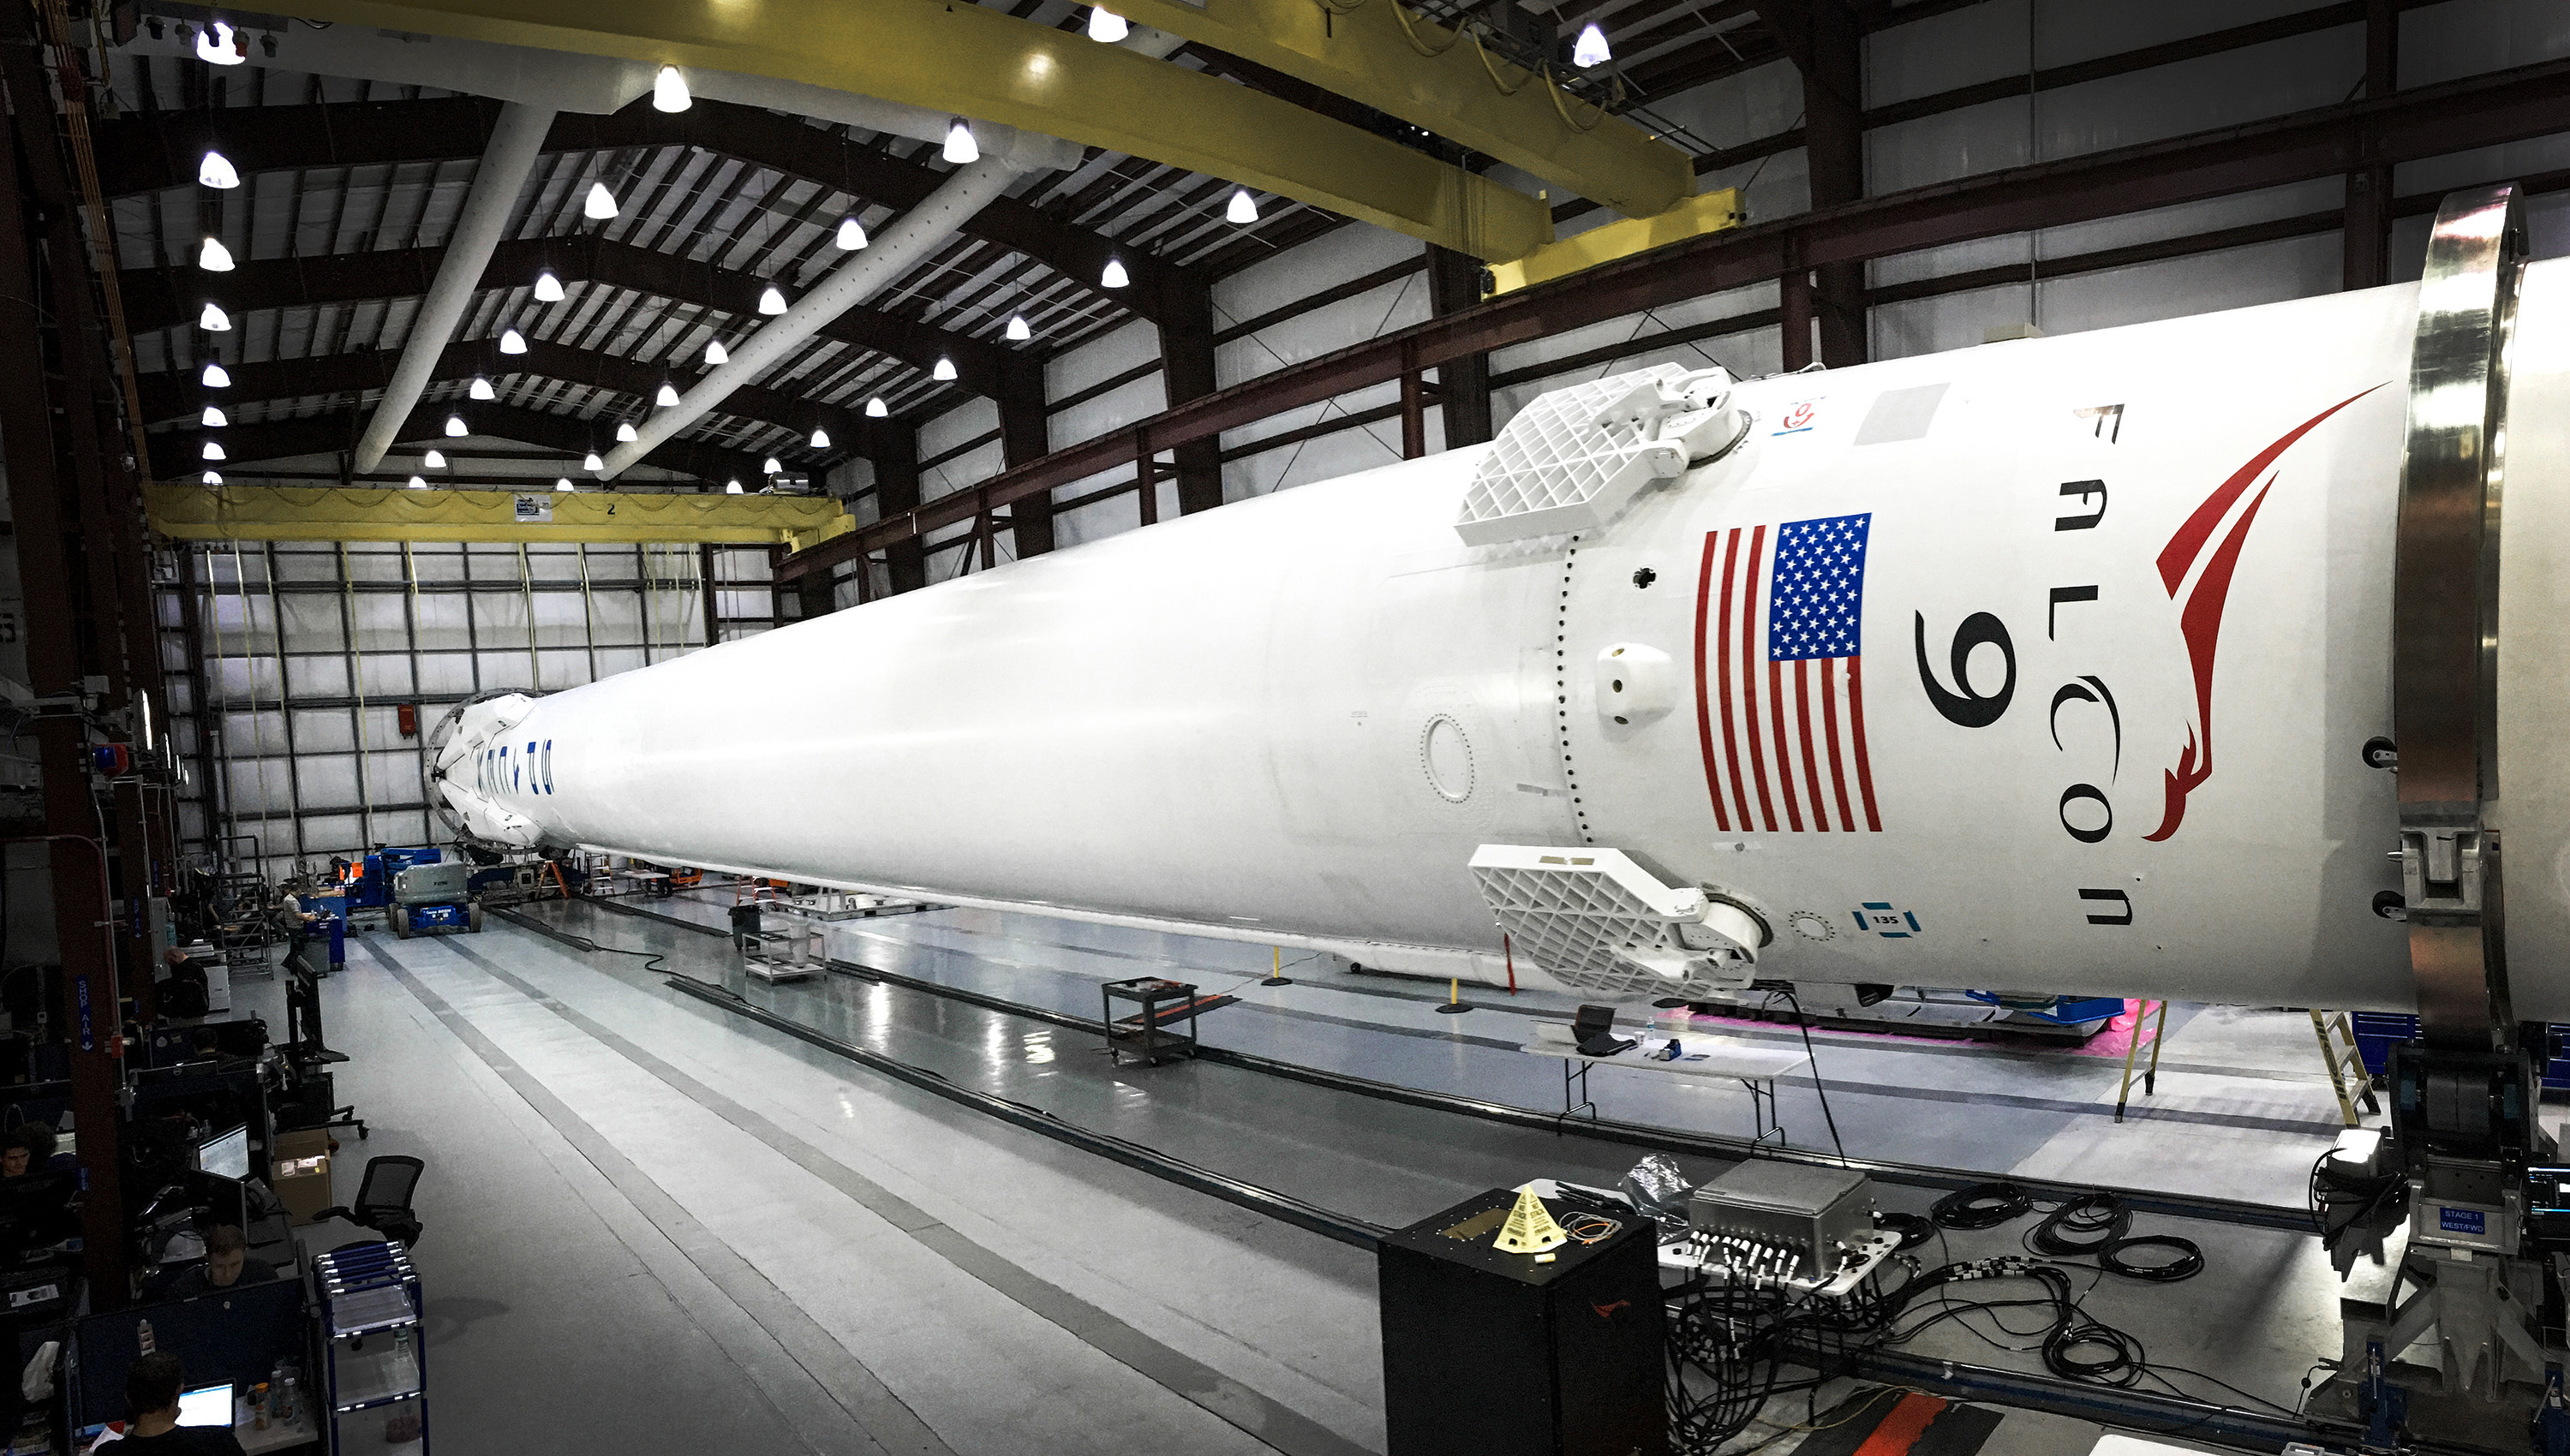 SpaceX's next rocket launch is on schedule for Sunday